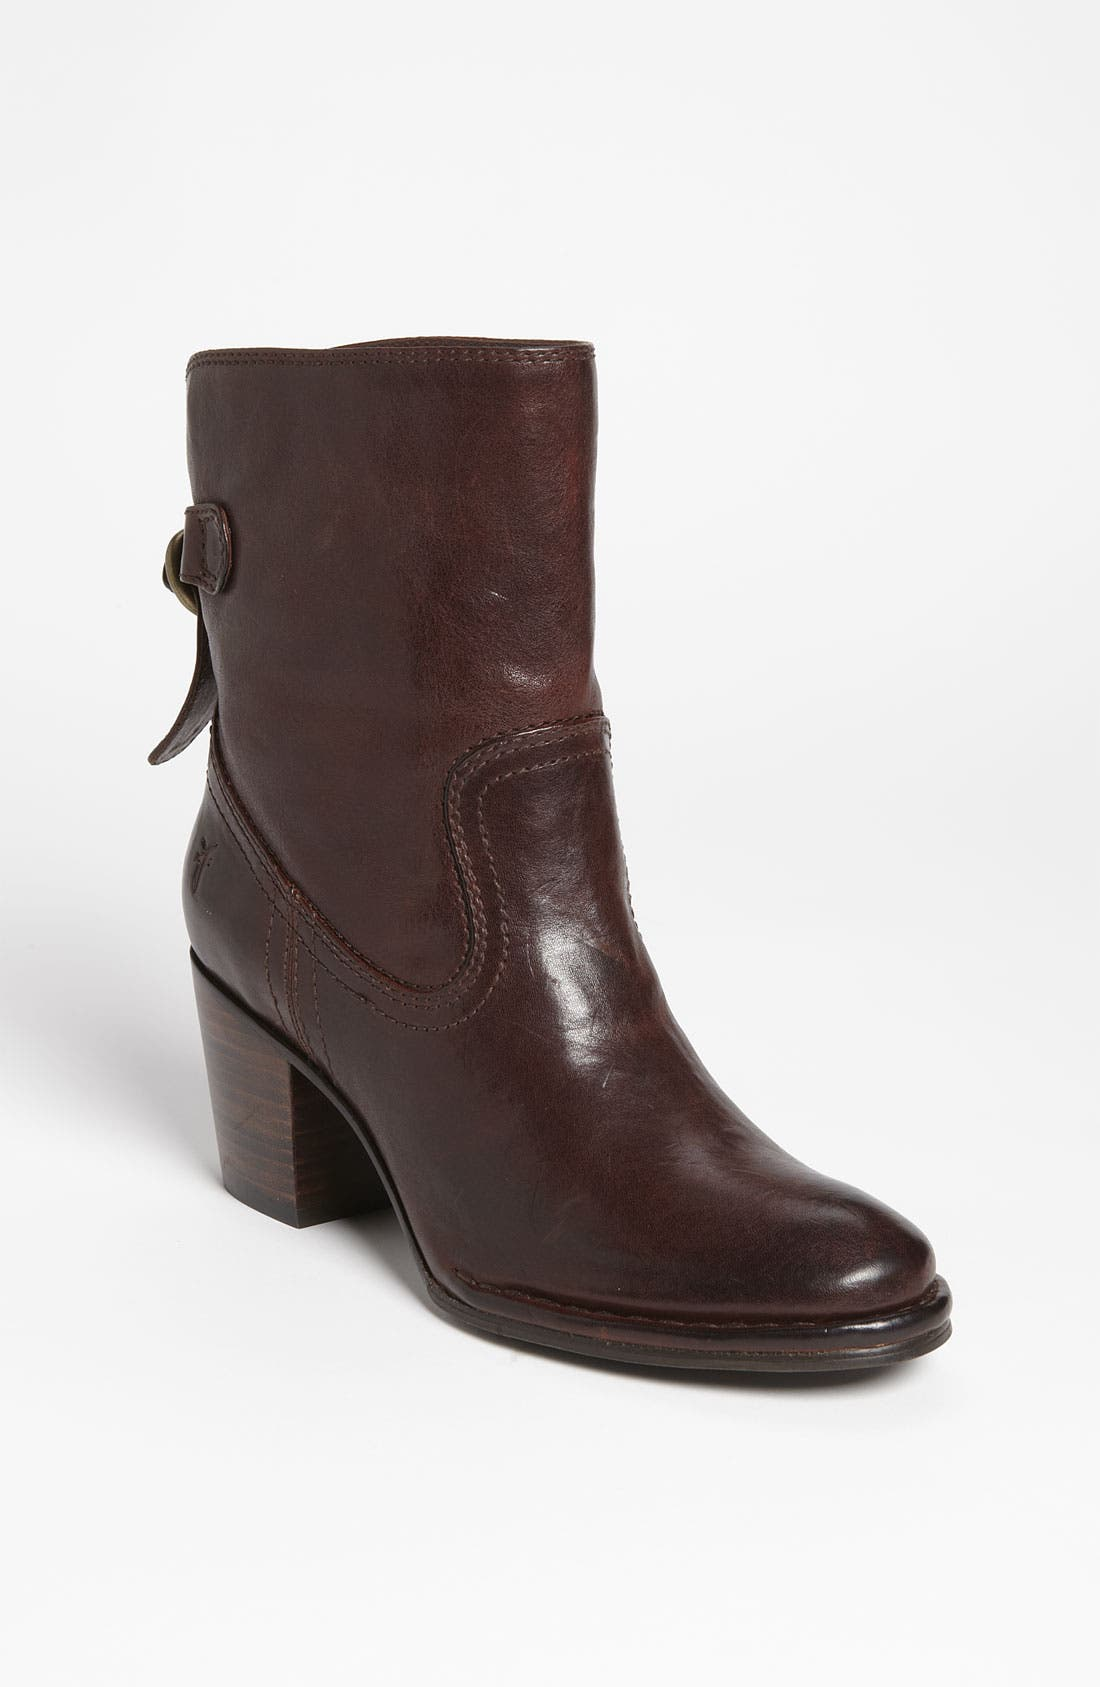 Alternate Image 1 Selected - Frye 'Lucinda' Short Boot (Nordstrom Exclusive)